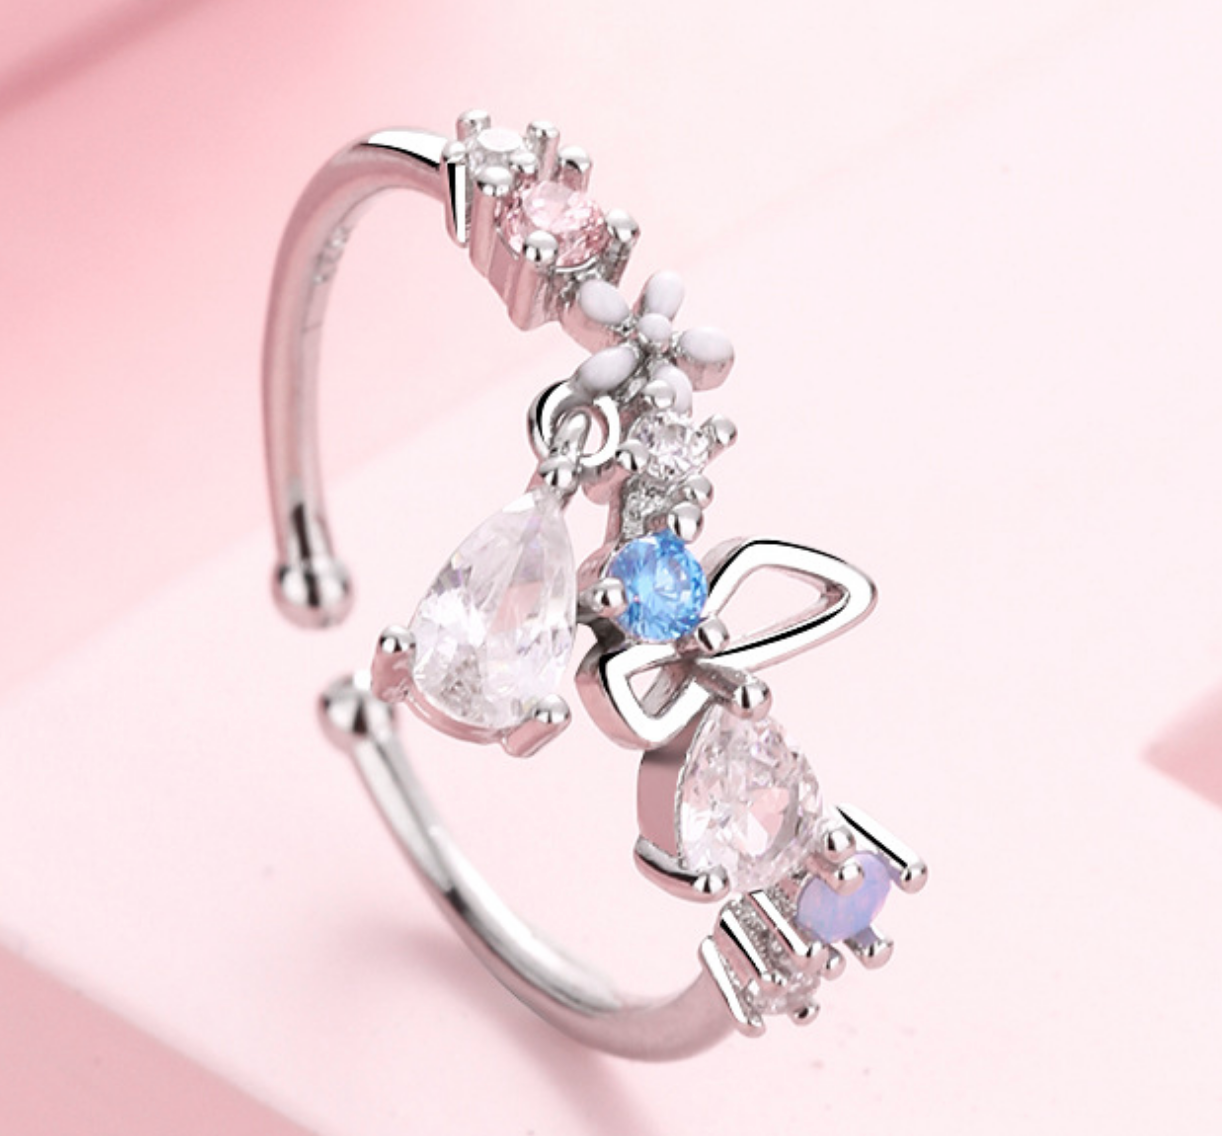 Butterfly Droplet Ring